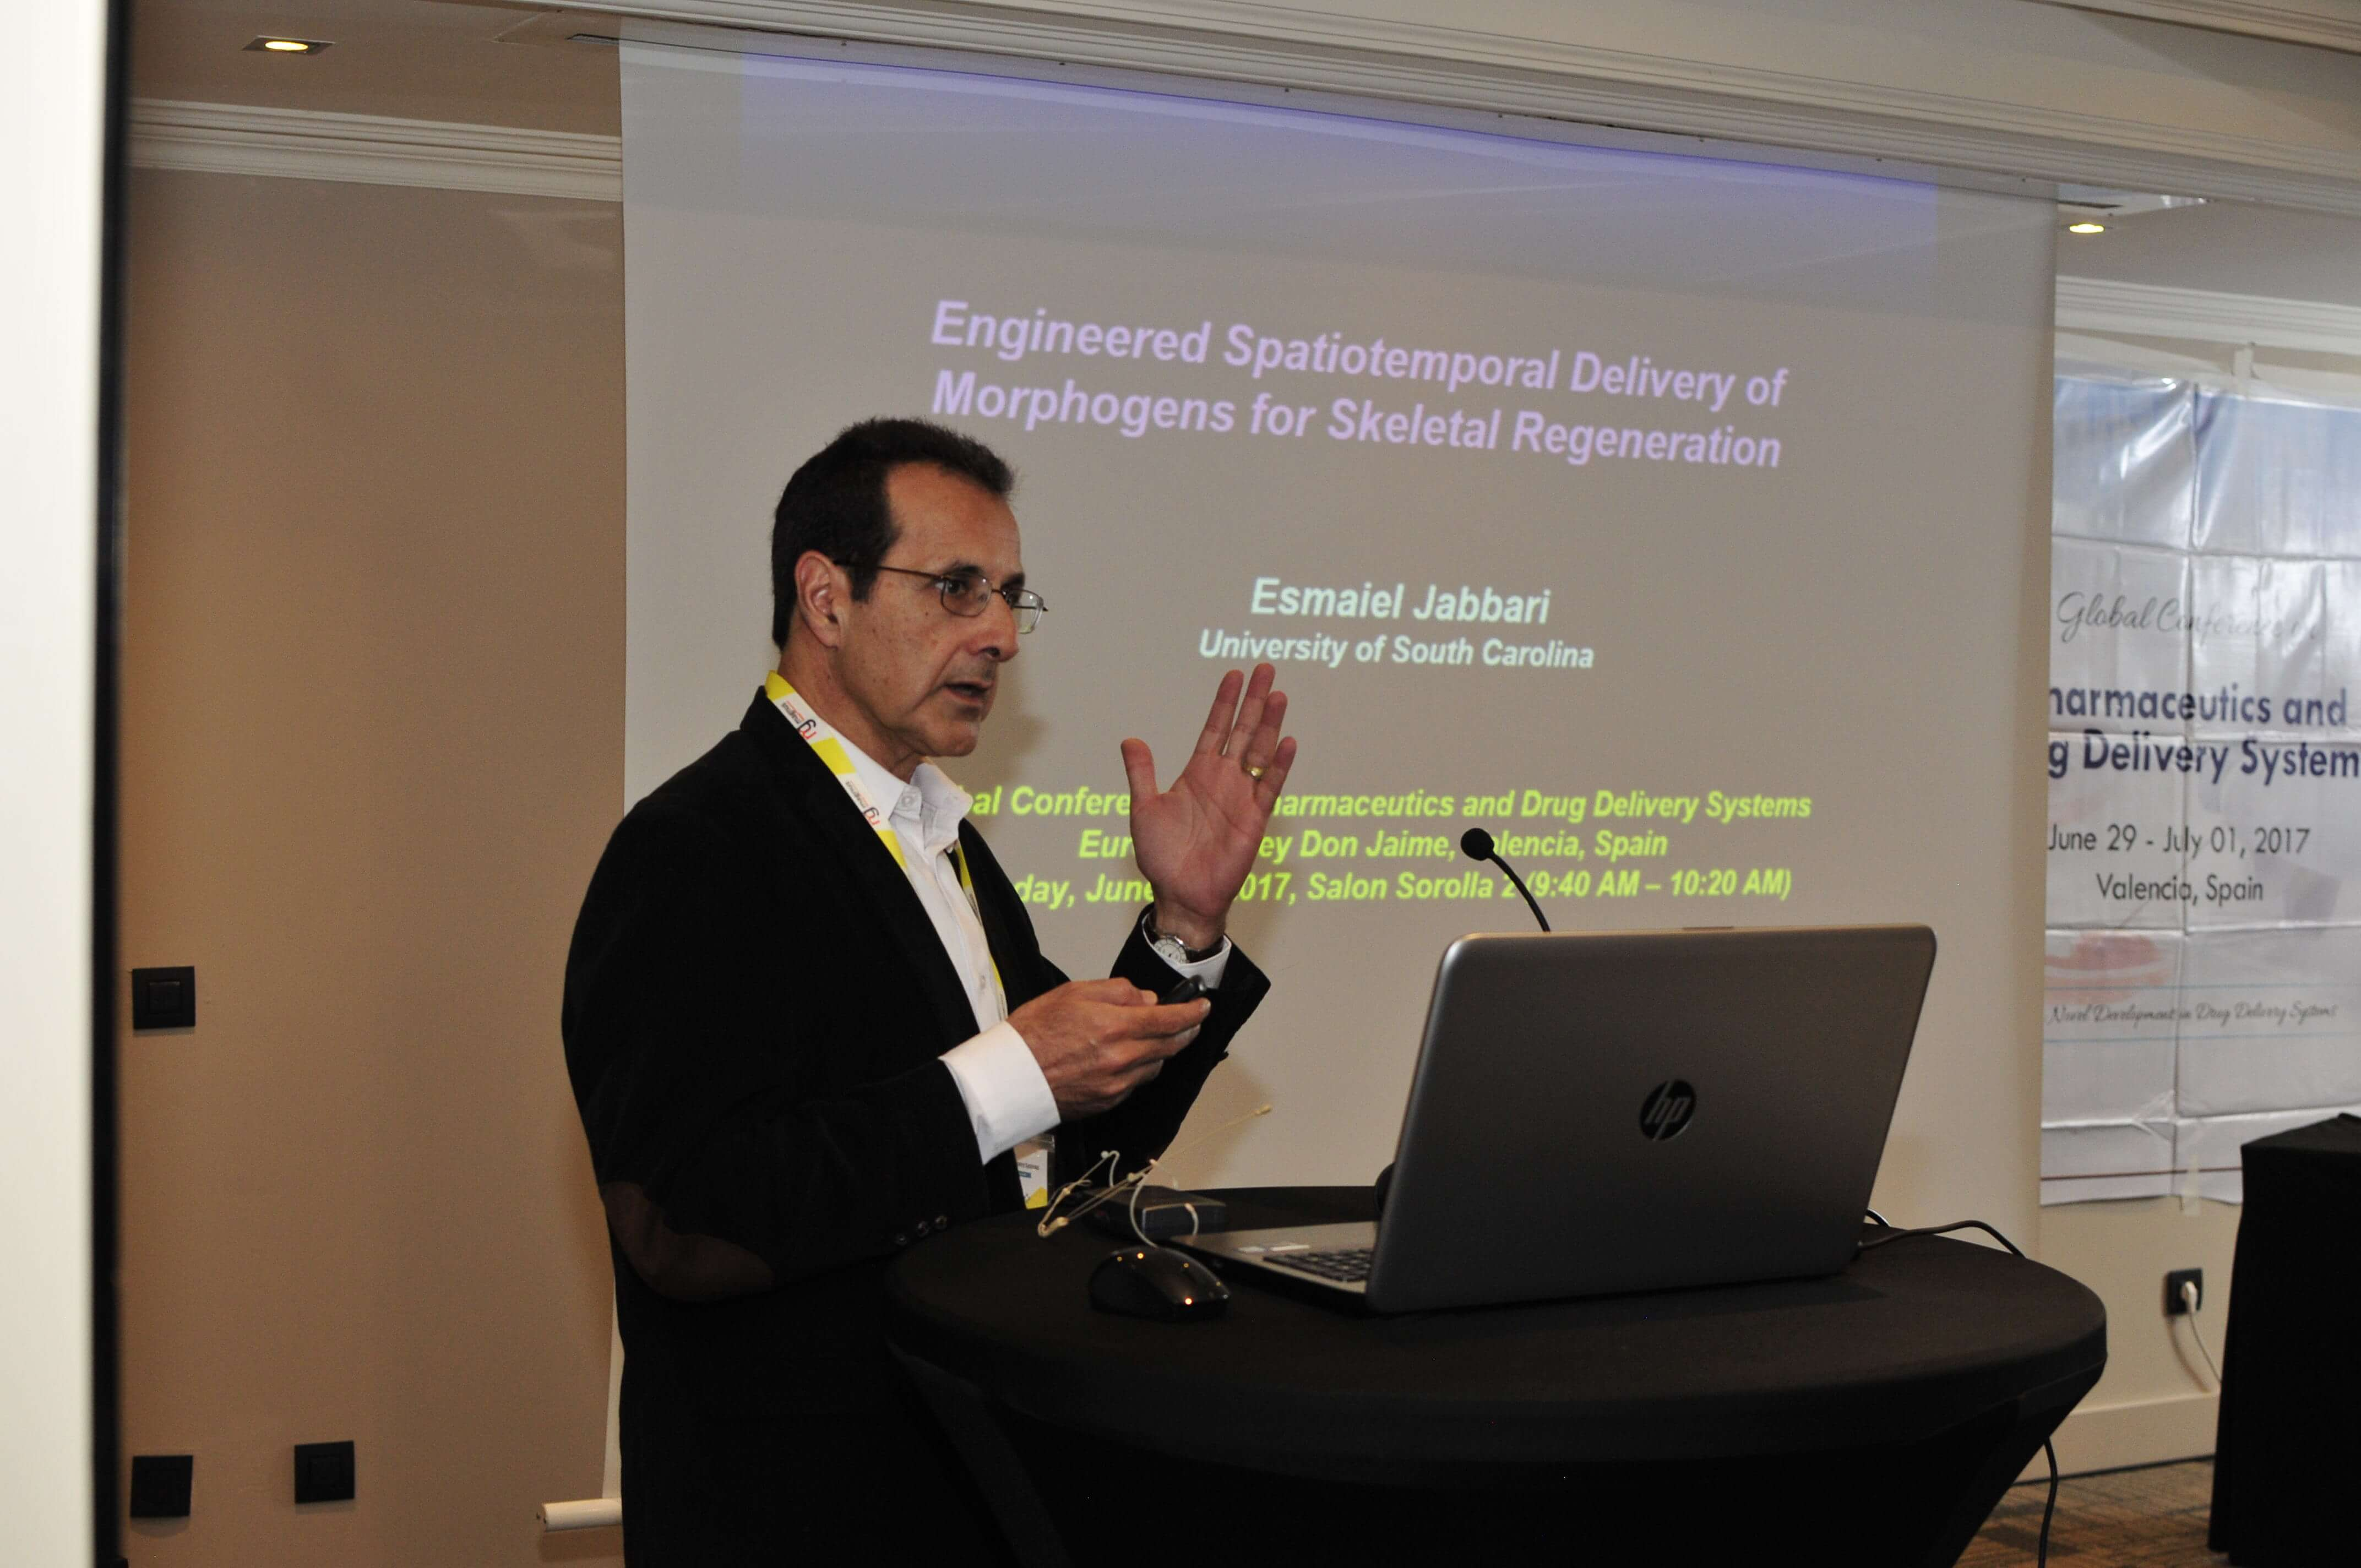 Leading speakers for Biotechnology summits-Esmaiel Jabbari